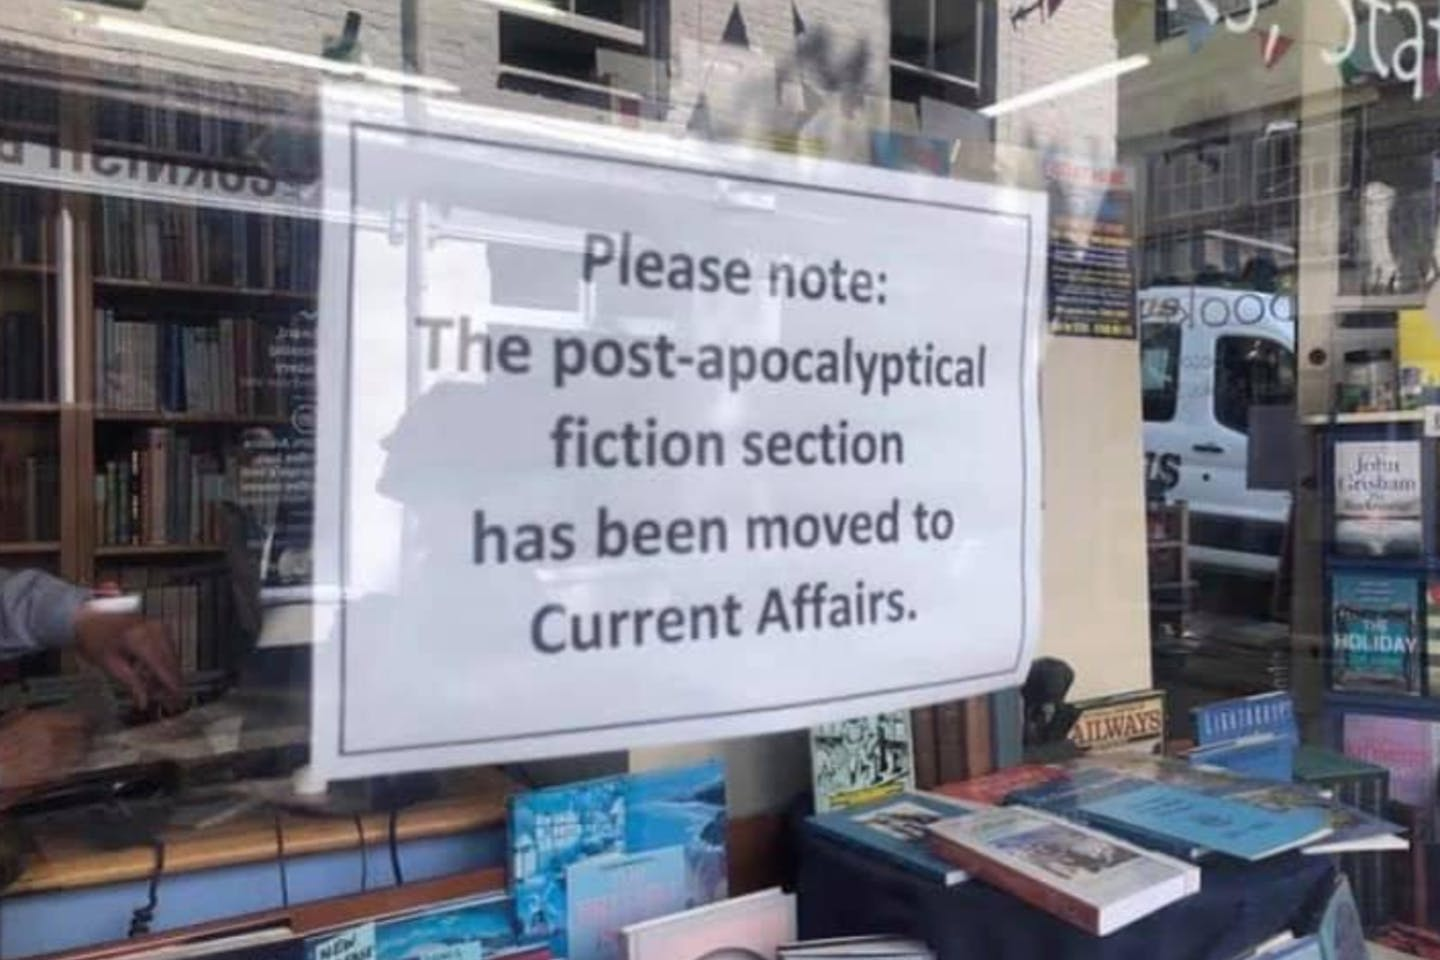 The post-apocalyptical fiction section has been moved to current affairs.